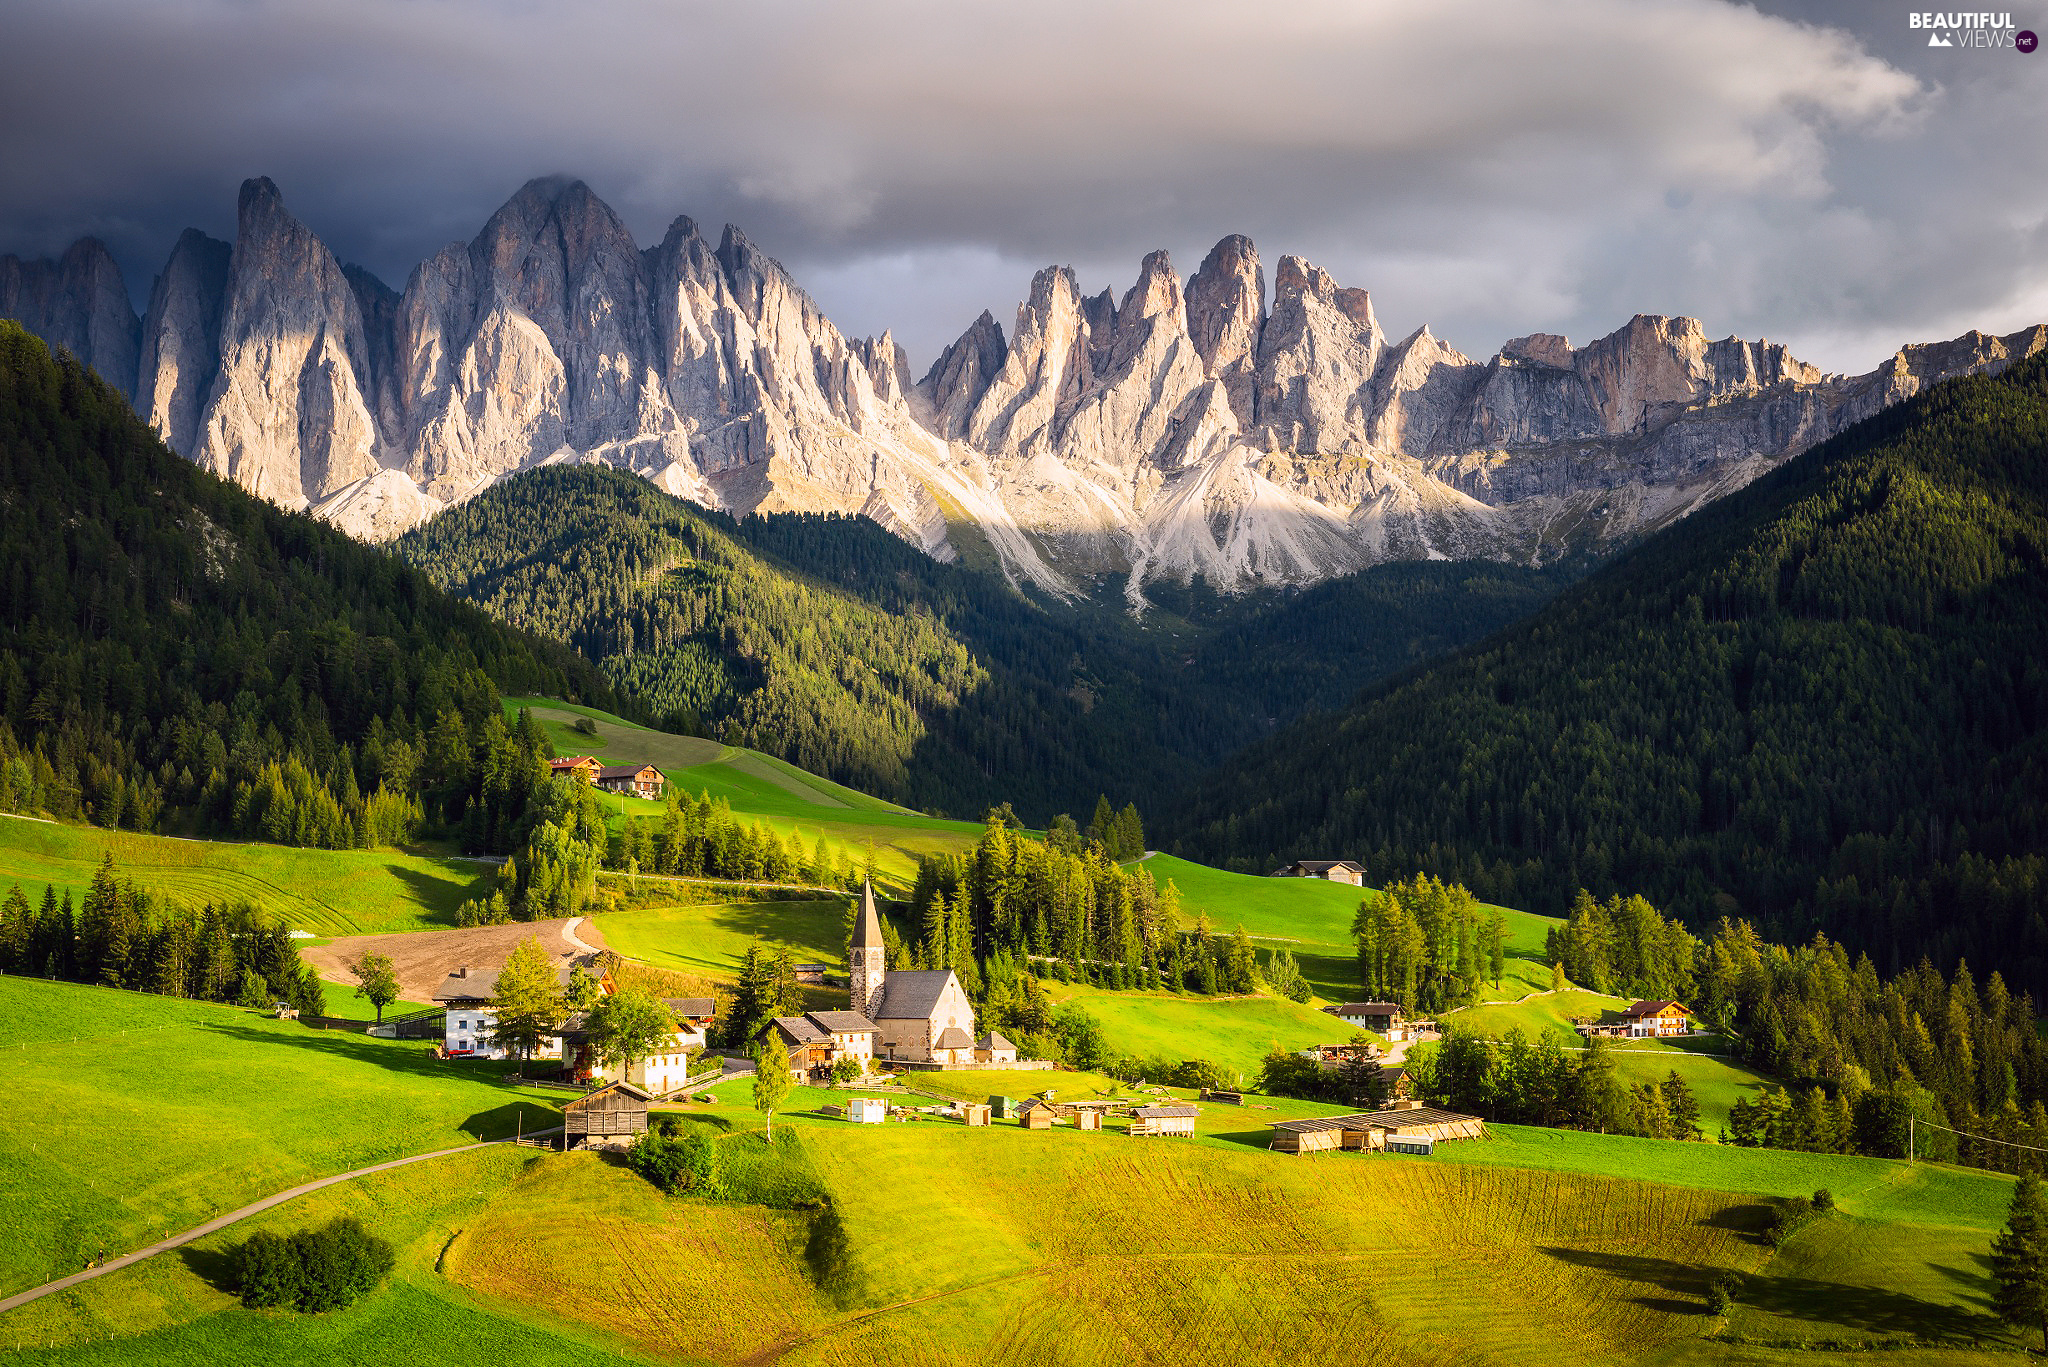 Val di Funes Valley, Dolomites Mountains, woods, Massif Odle, Italy, Village of Santa Maddalena, Houses